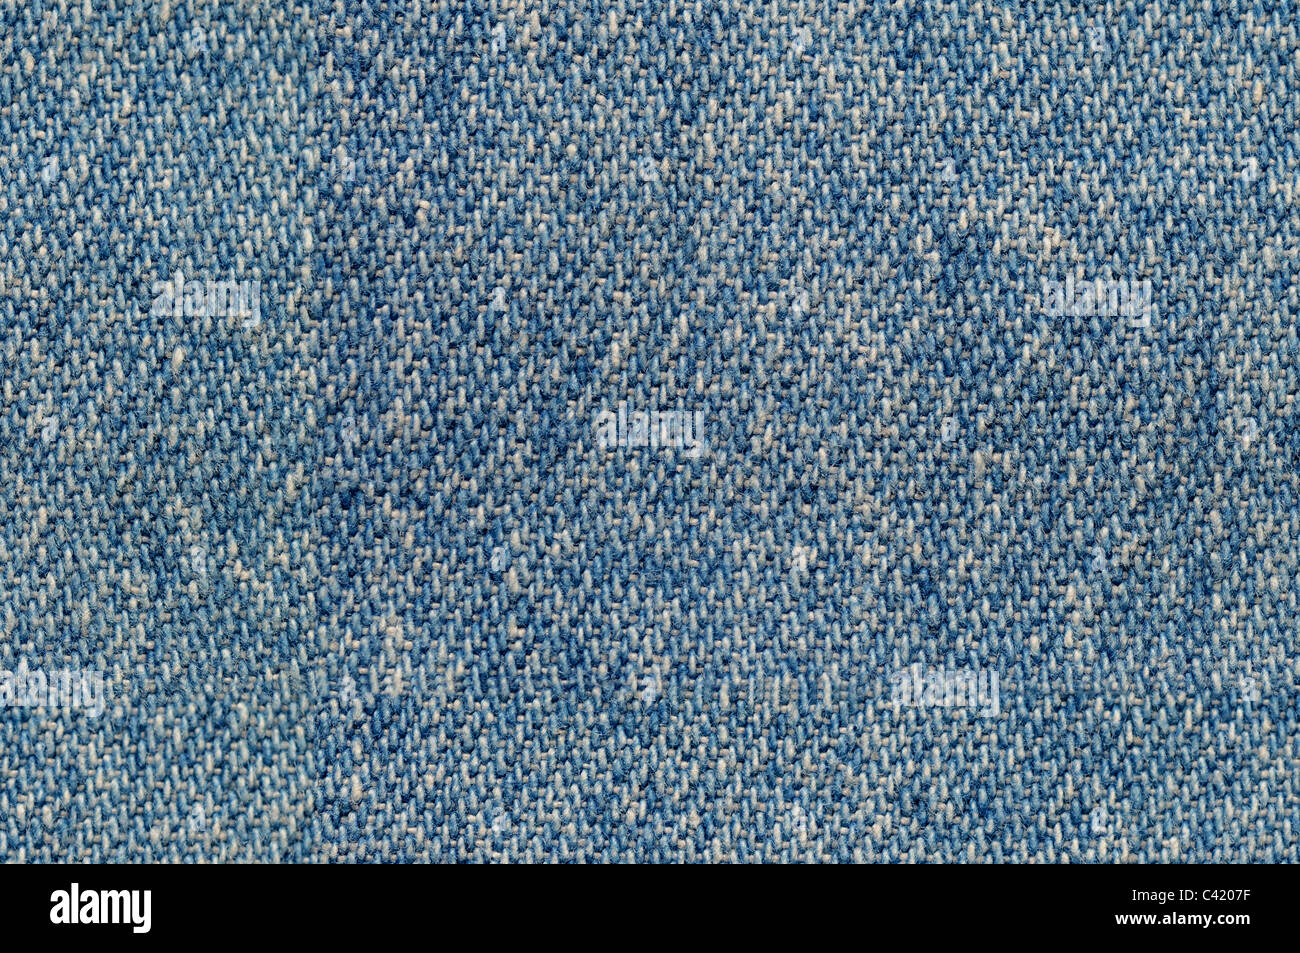 Blue denim cloth fabric background seamlessly tileable - Stock Image